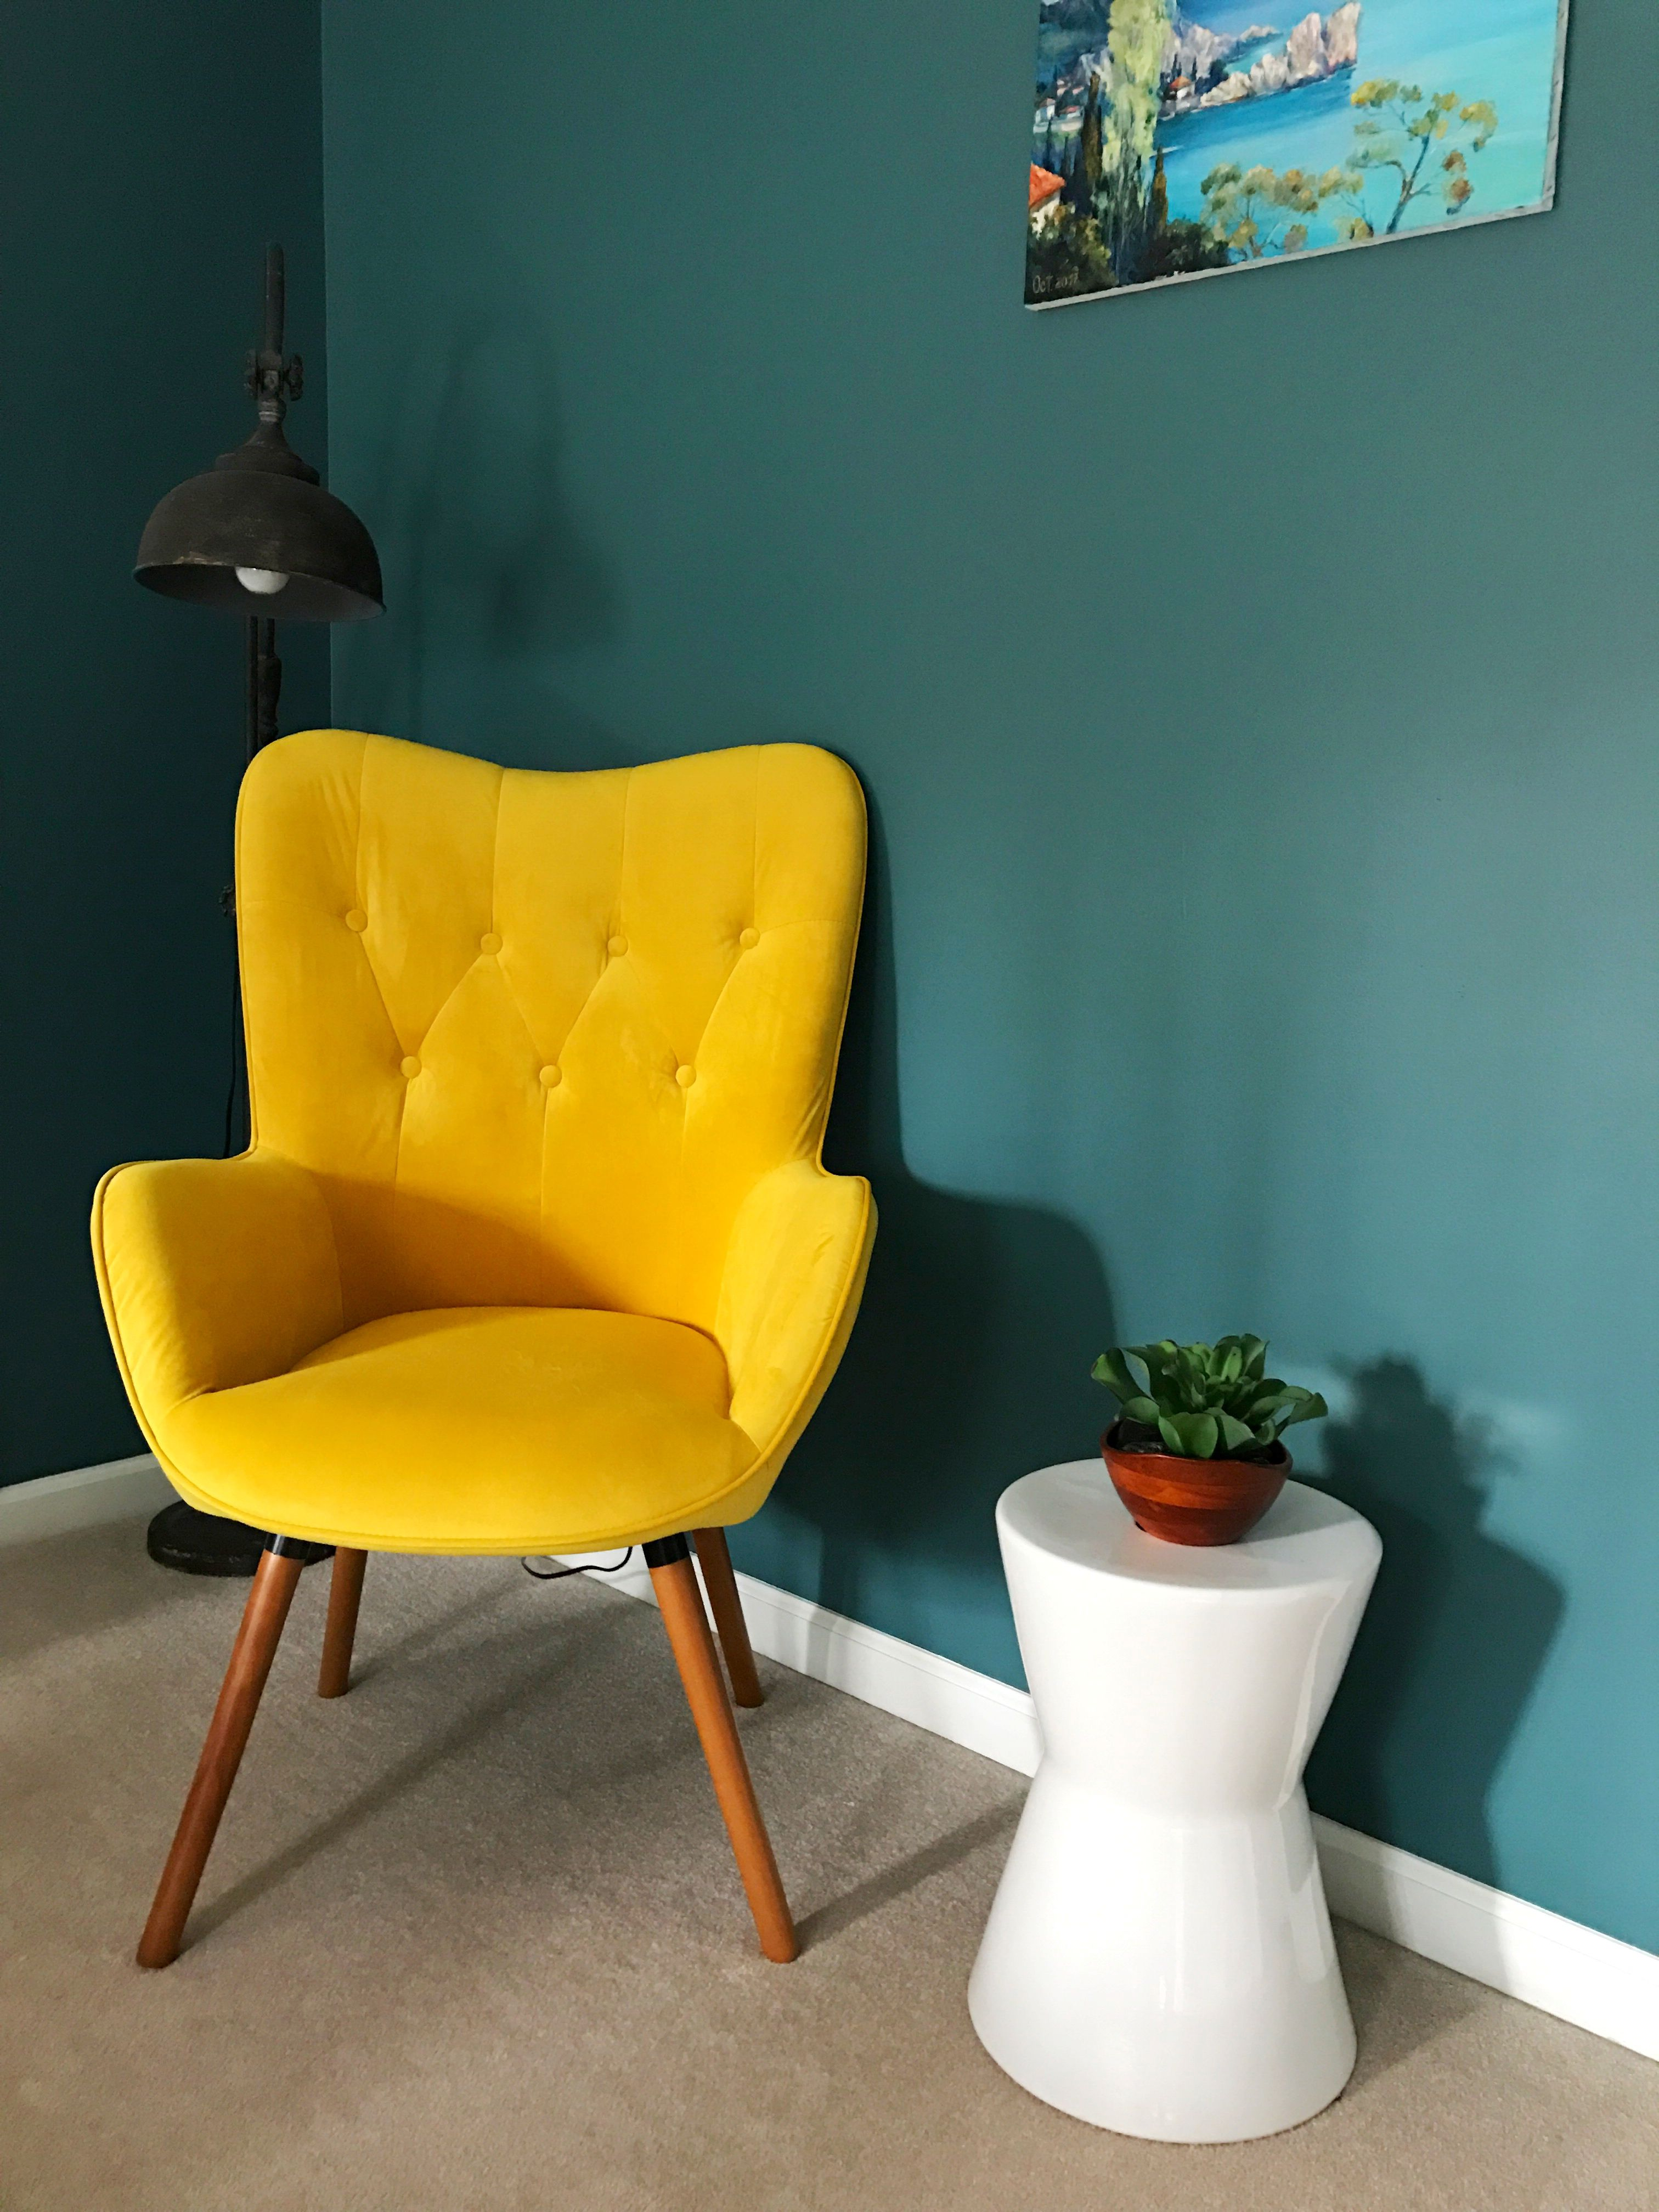 i used this yellow chair to add a small color splash into my moody